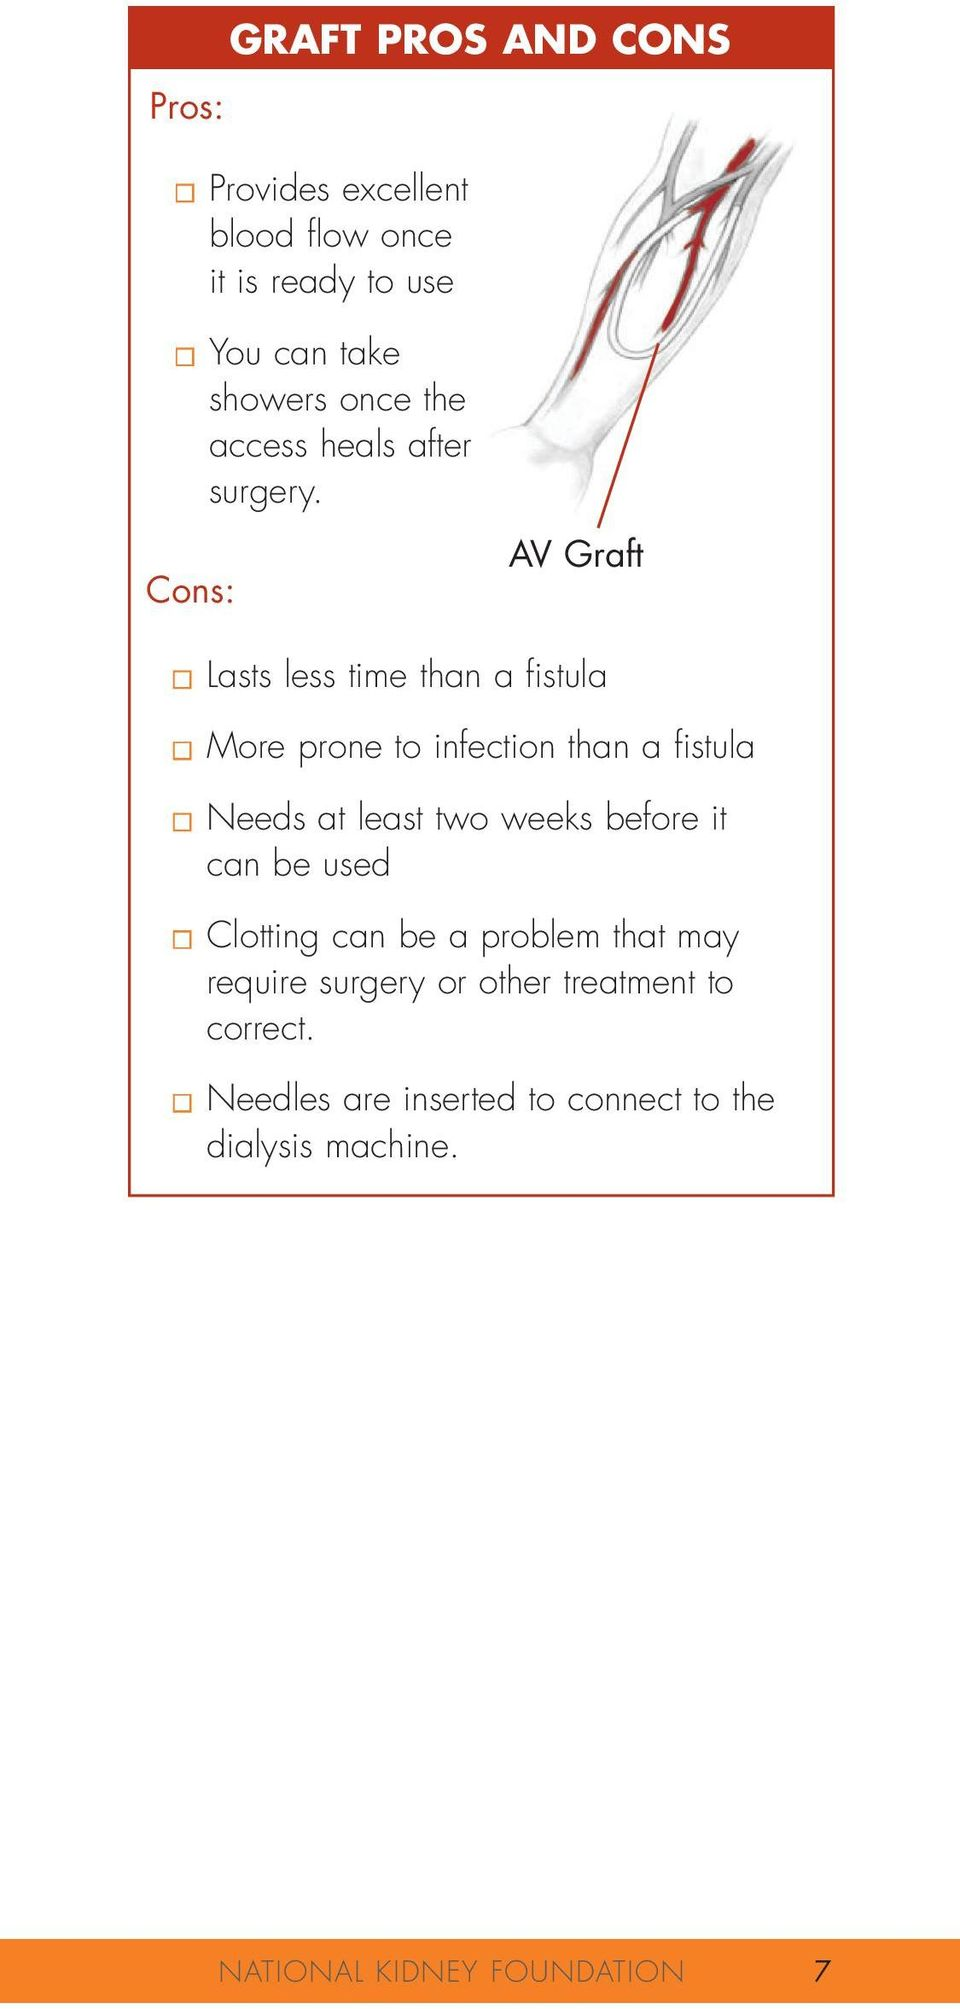 Cons: AV Graft Lasts less time than a fistula More prone to infection than a fistula Needs at least two weeks